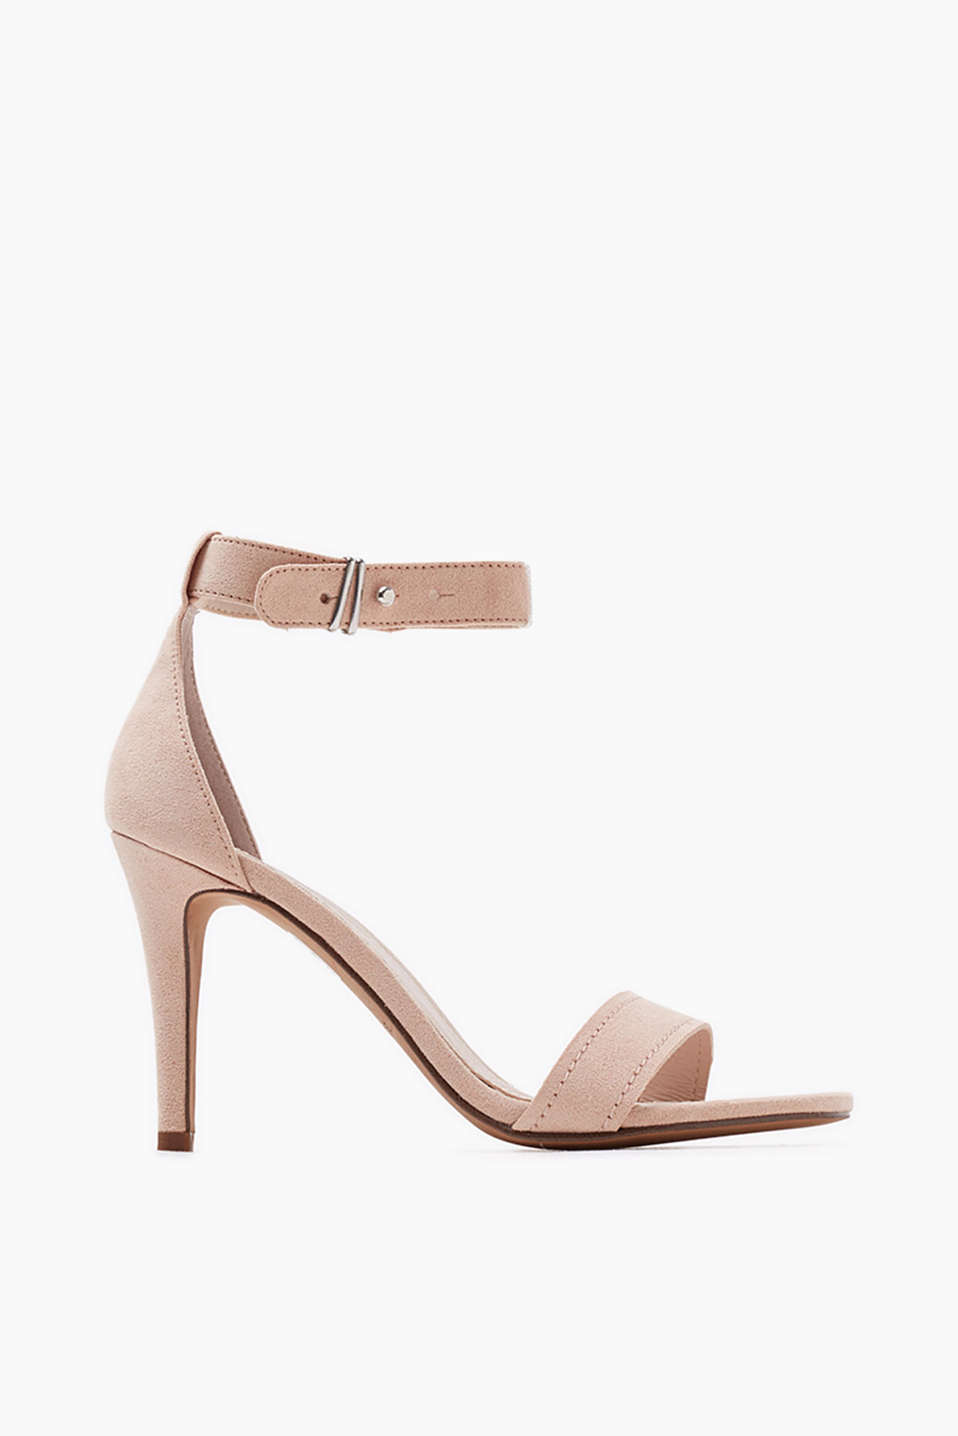 Slim sandals with a stiletto heel in faux suede